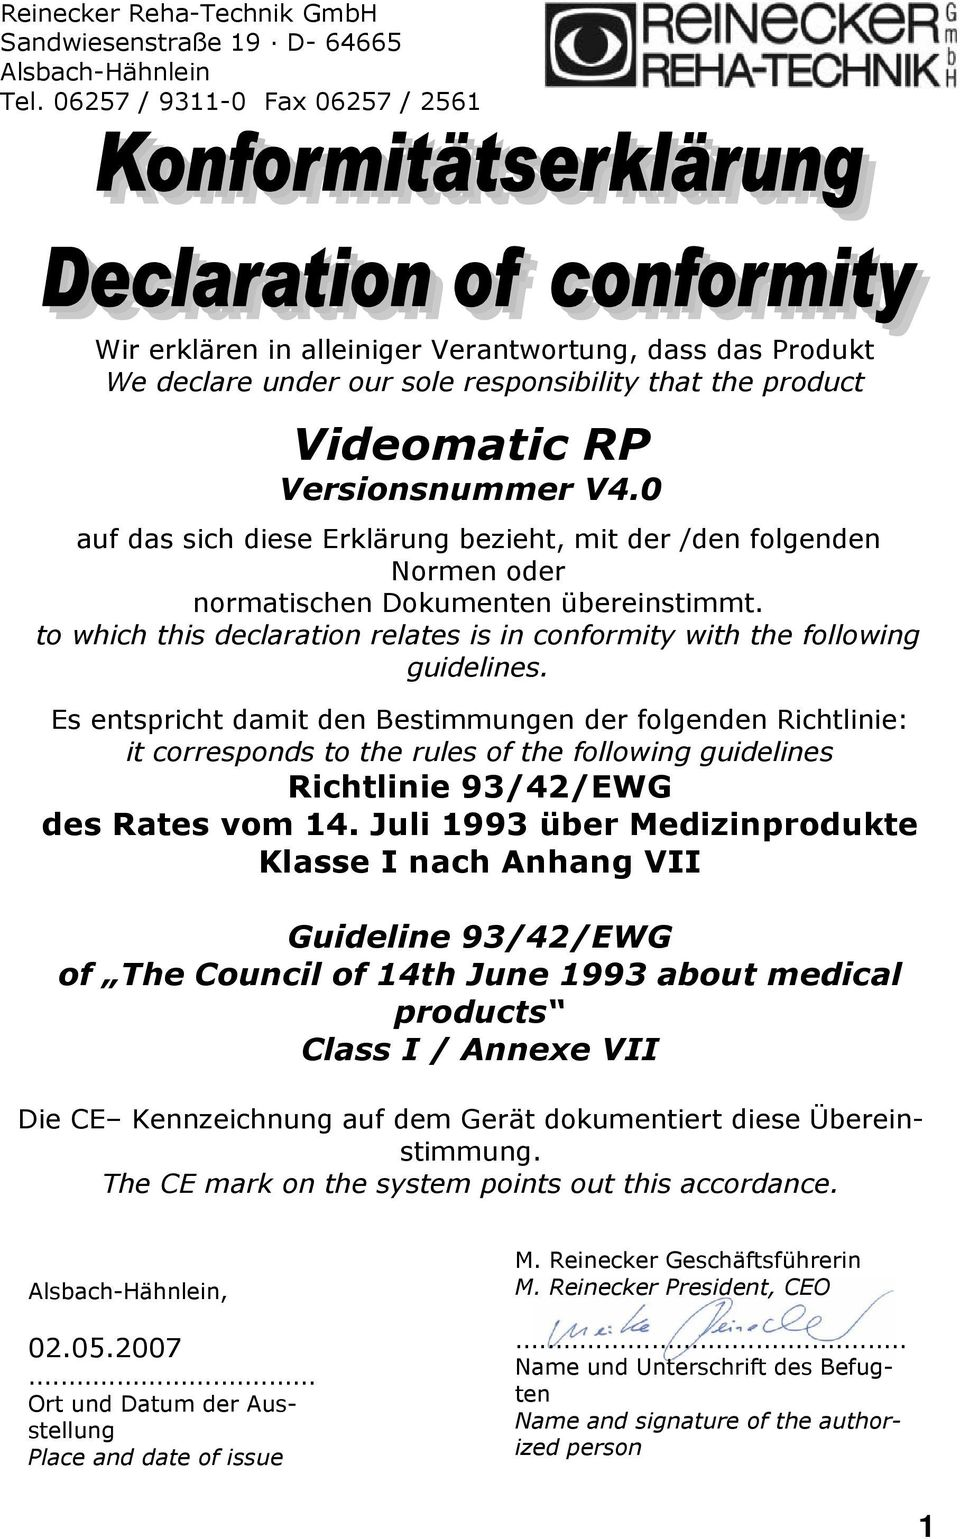 0 auf das sich diese Erklärung bezieht, mit der /den folgenden Normen oder normatischen Dokumenten übereinstimmt. to which this declaration relates is in conformity with the following guidelines.